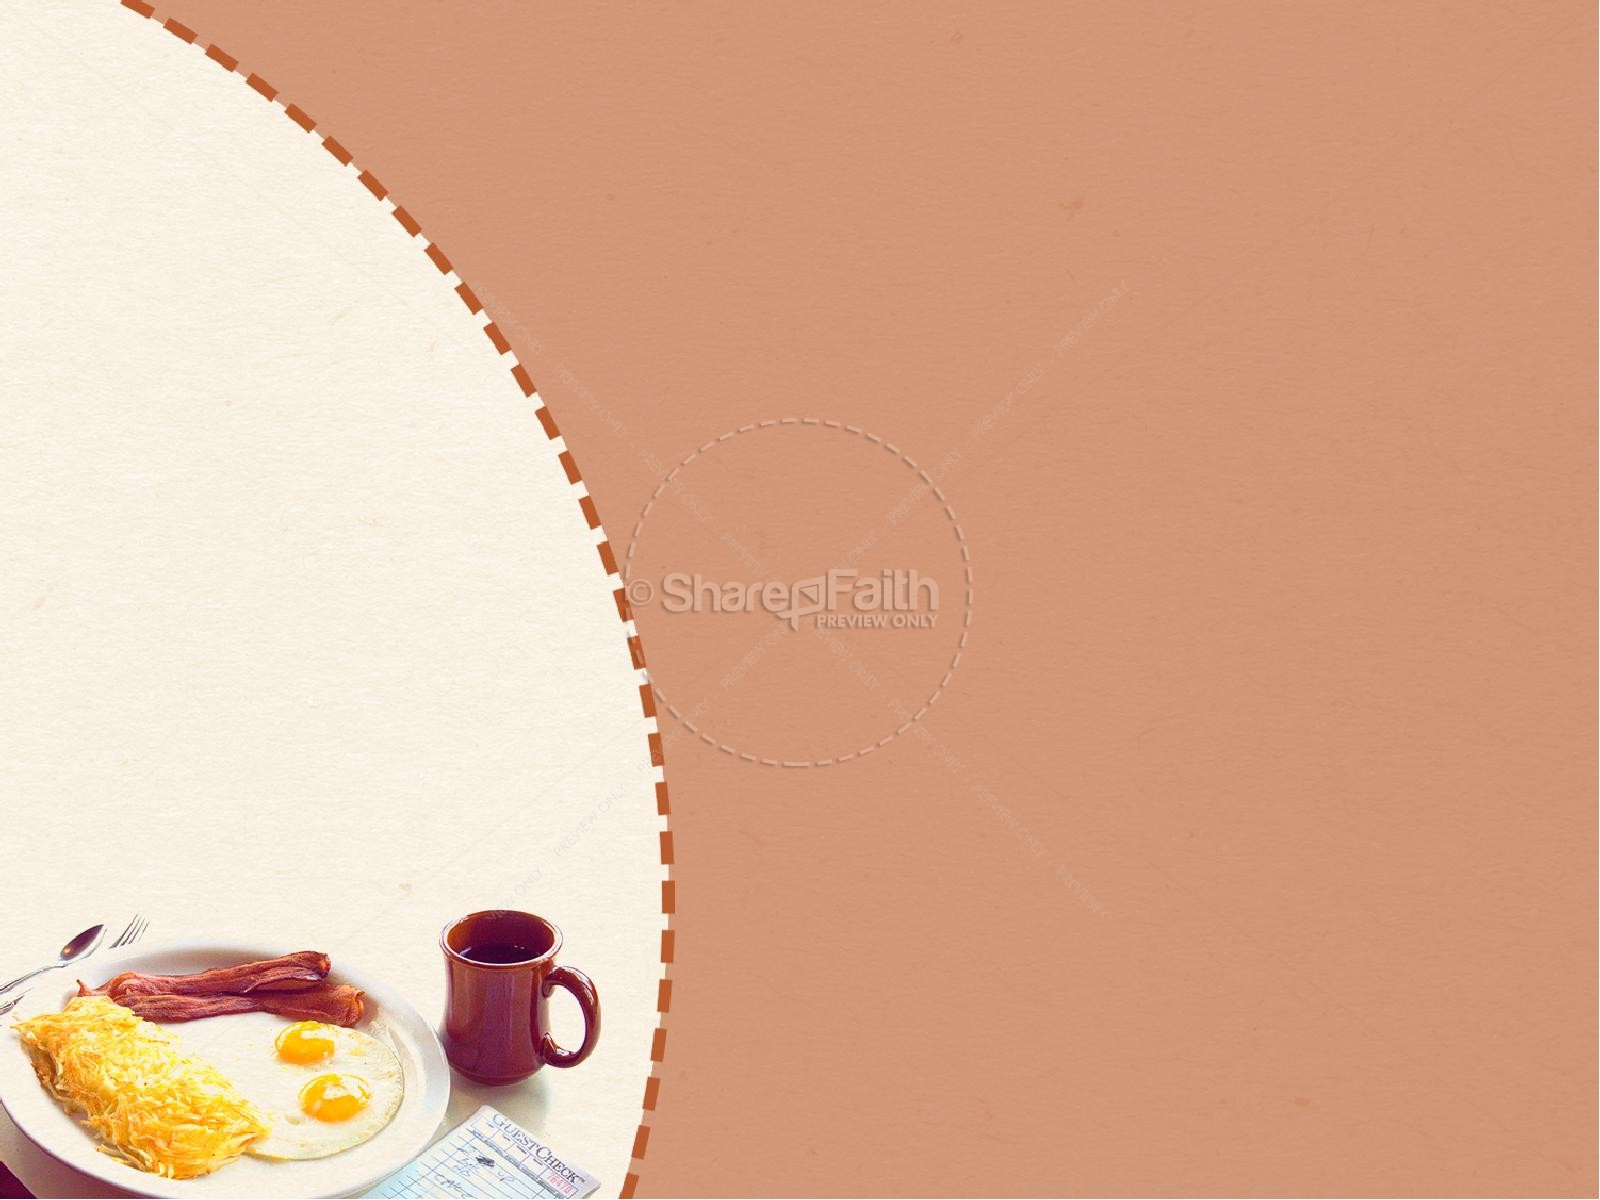 Men's Breakfast PowerPoint Template | PowerPoint Sermons